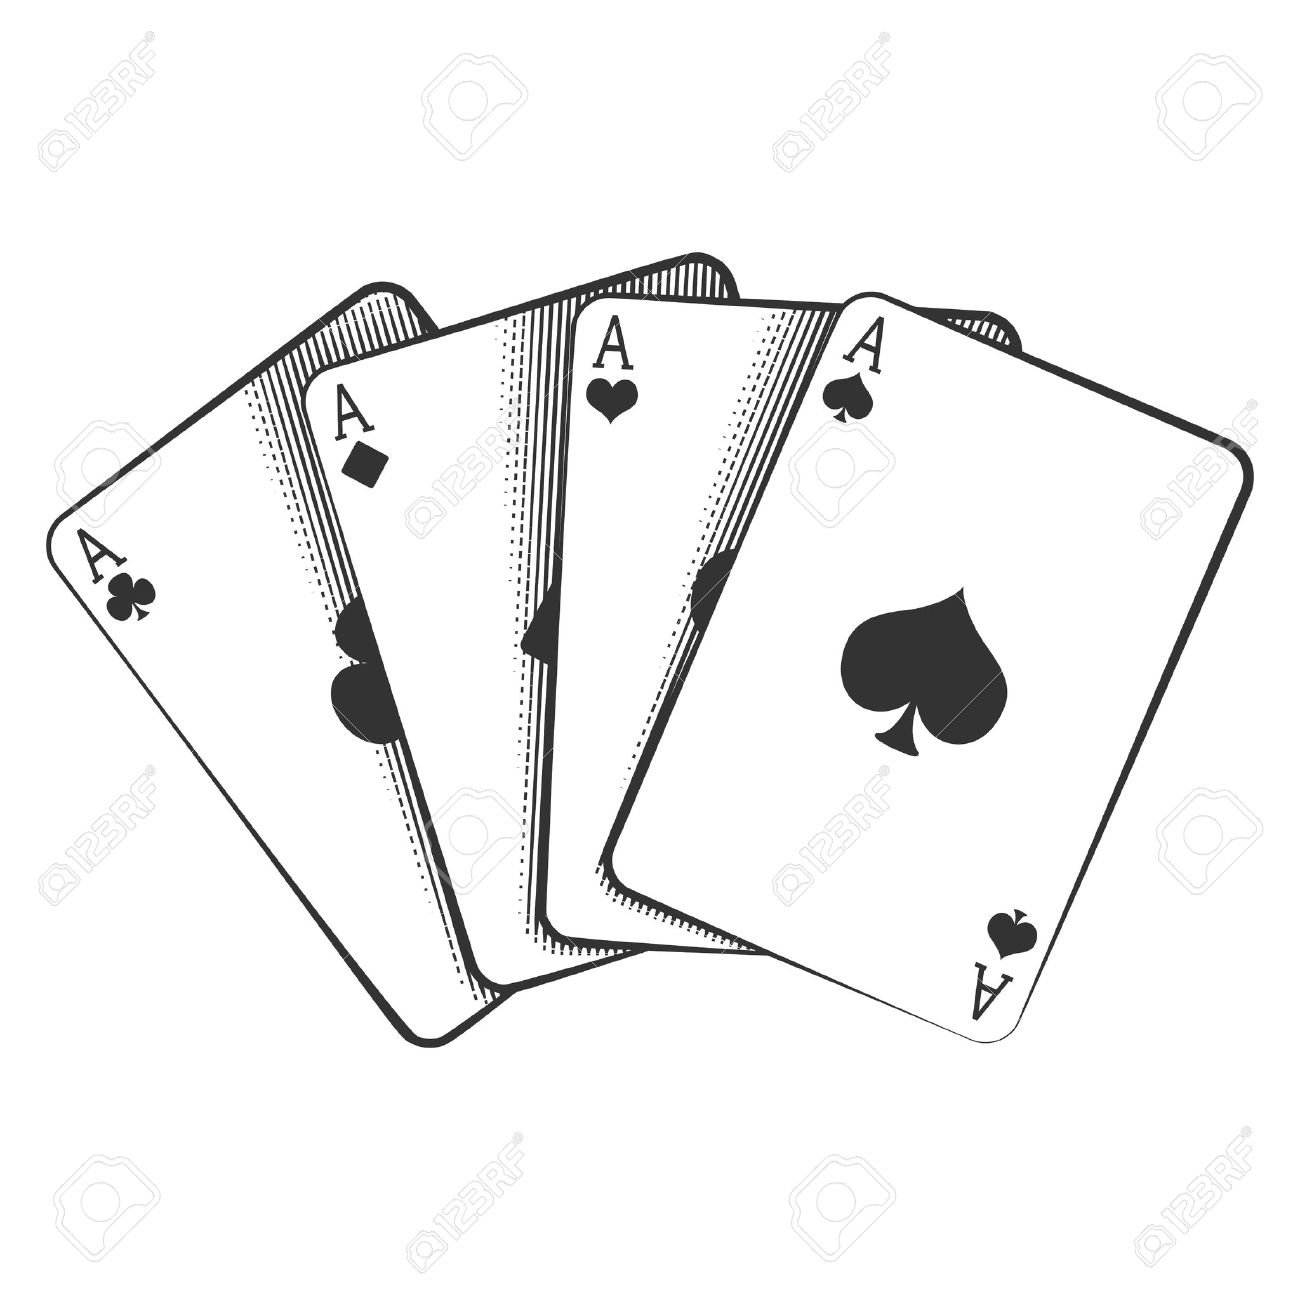 Deck Of Cards Clipart Black And White.